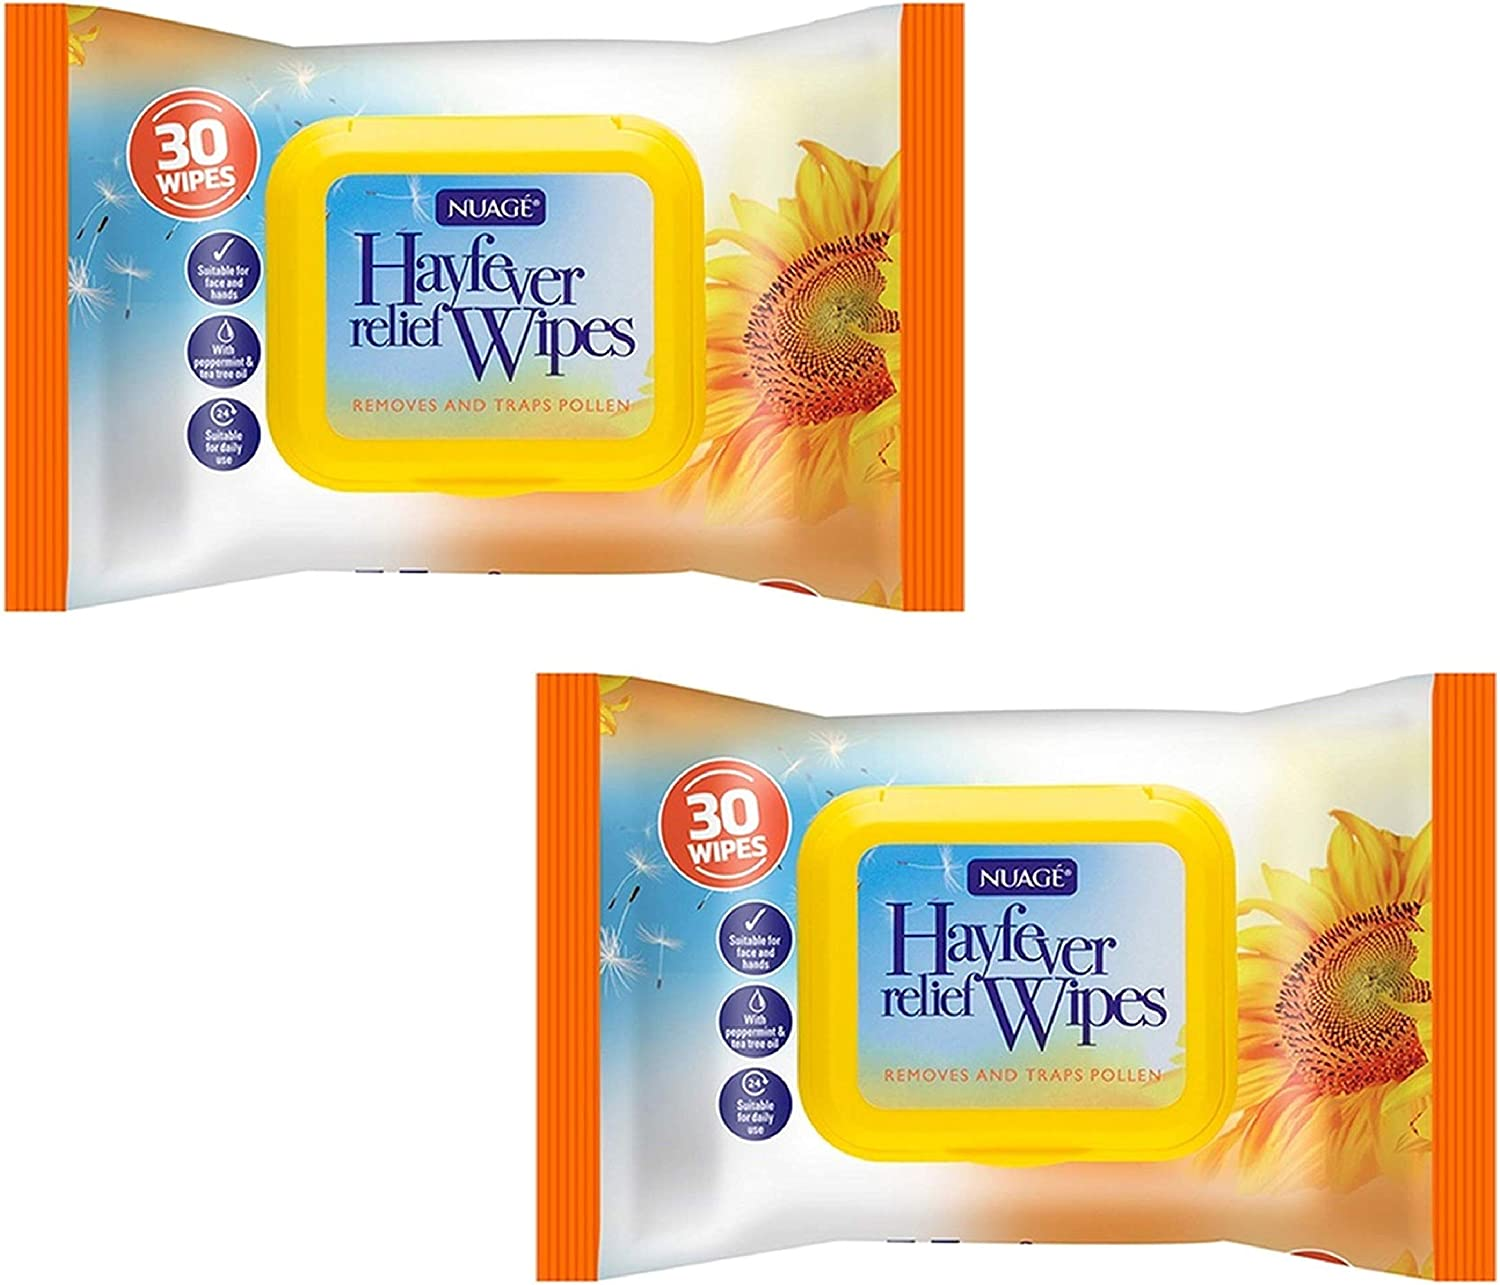 2 Packet 30 x Hayfever /& Allergy Relief Wipes for Hand /& Face Traps Pollen Dust Dirt Pet Allergy Wet Hay Fever Wipes 60 Wipes